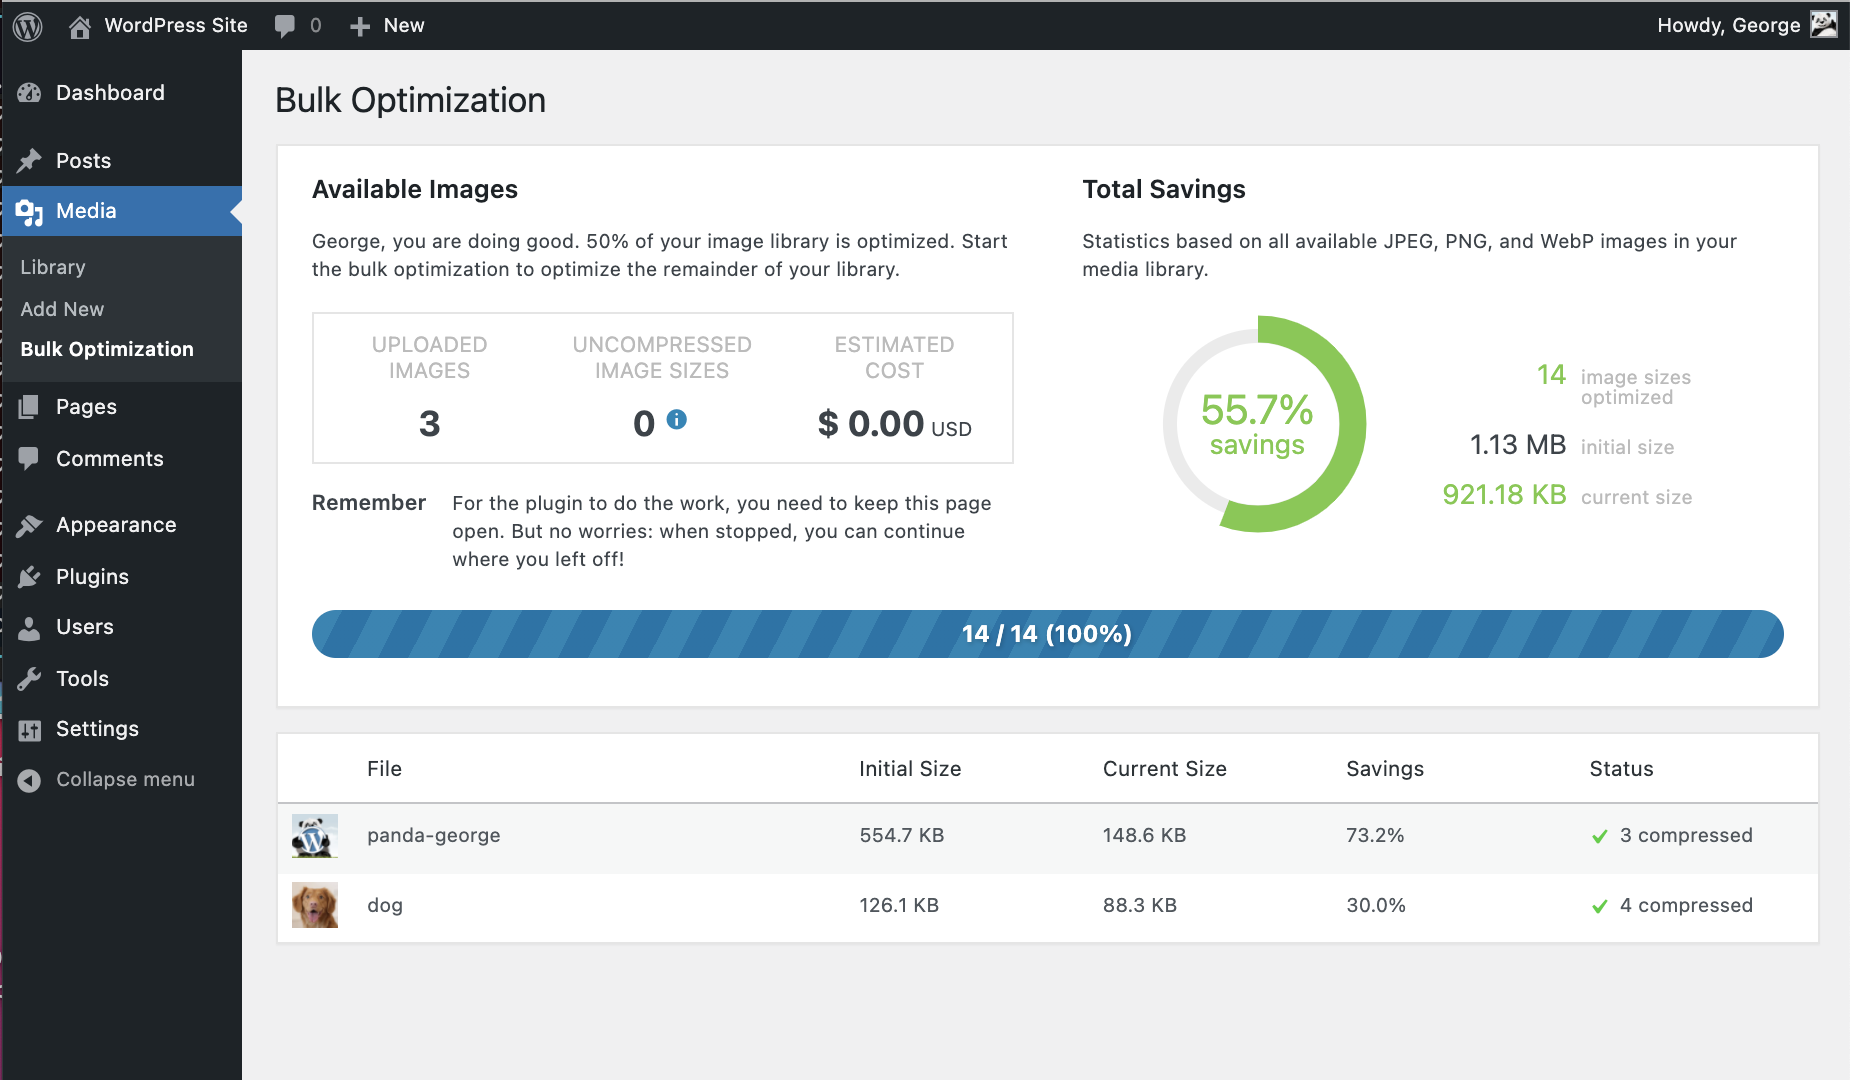 Last but not least you can also use Bulk Optimization to optimize your entire WordPress site.